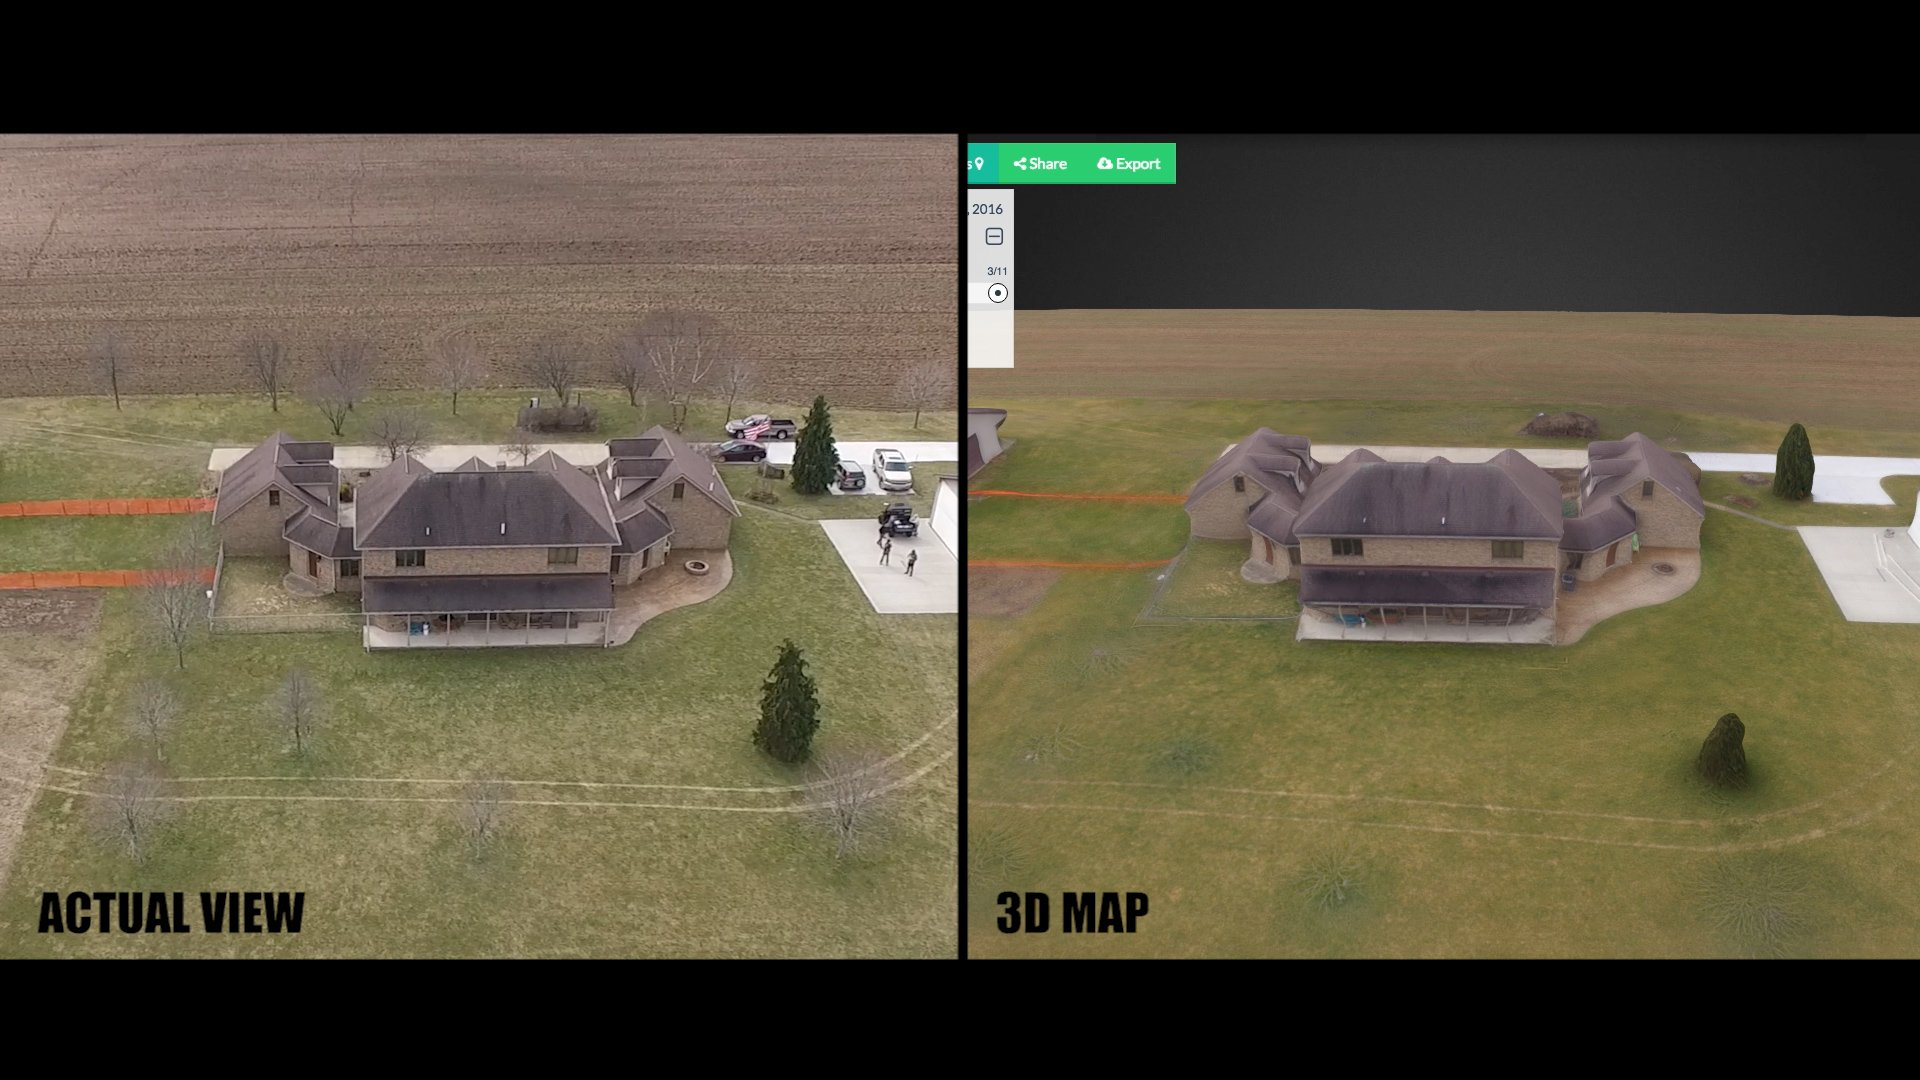 3d mapping drone | Mla format sample website on strategy mapping, food mapping, architecture mapping,